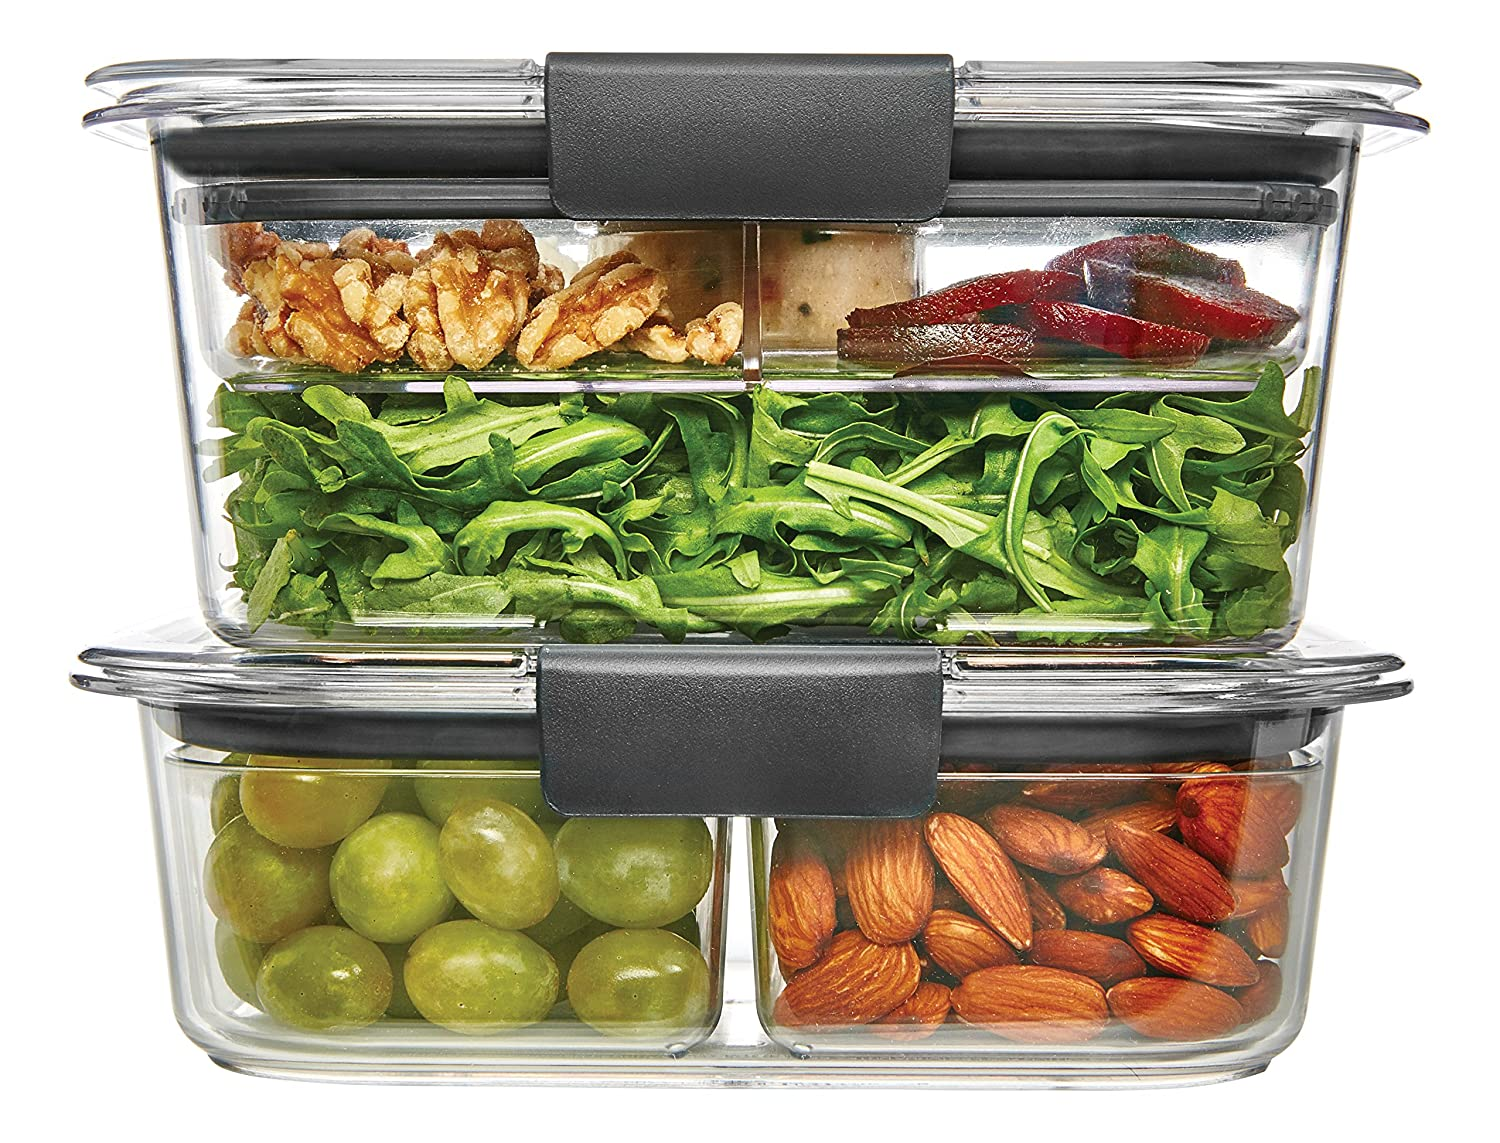 Amazoncom Rubbermaid Brilliance Food Storage Container Salad and